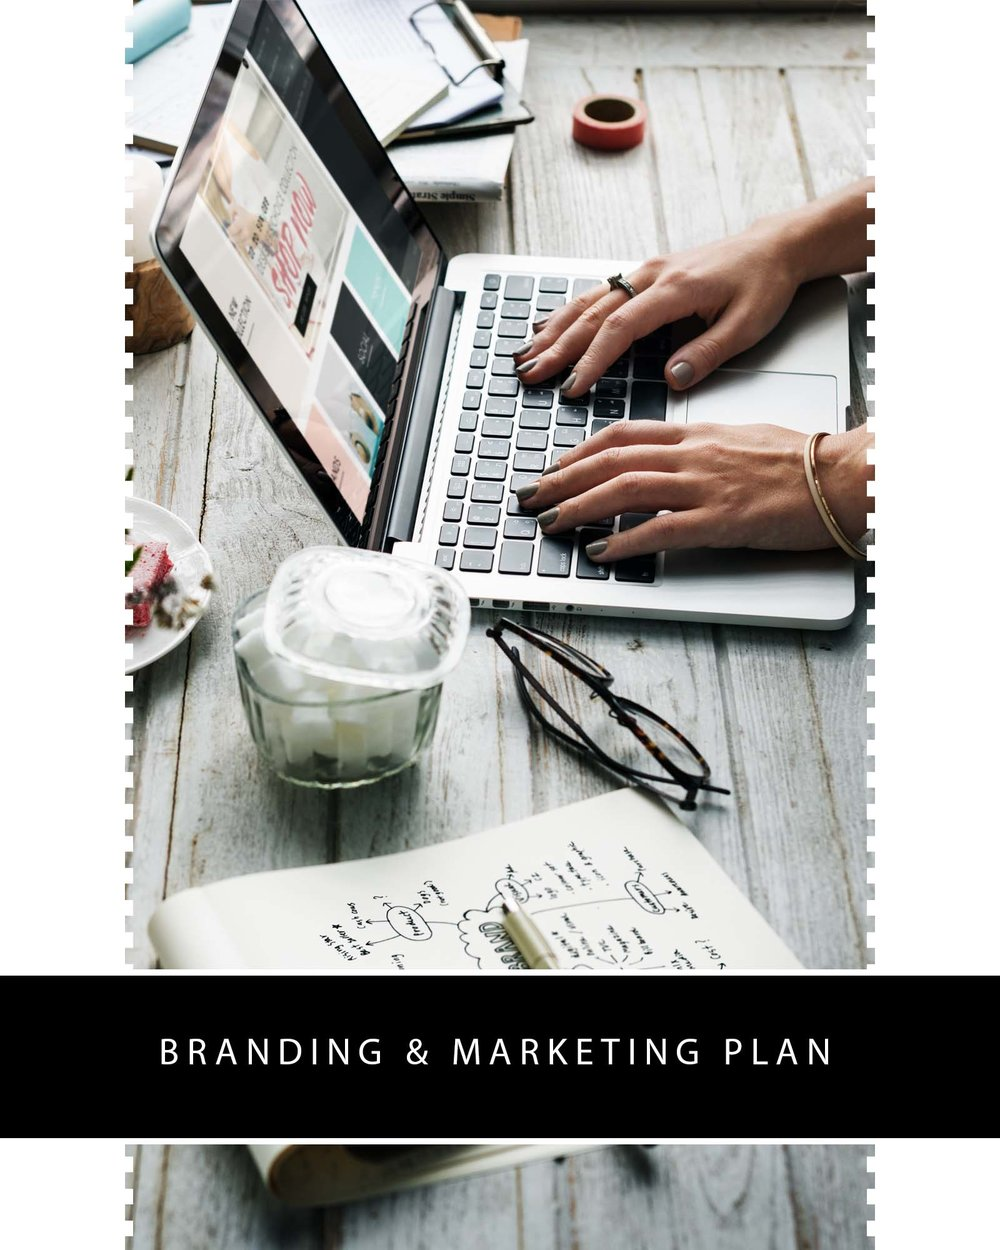 branding and marketing plan.jpg